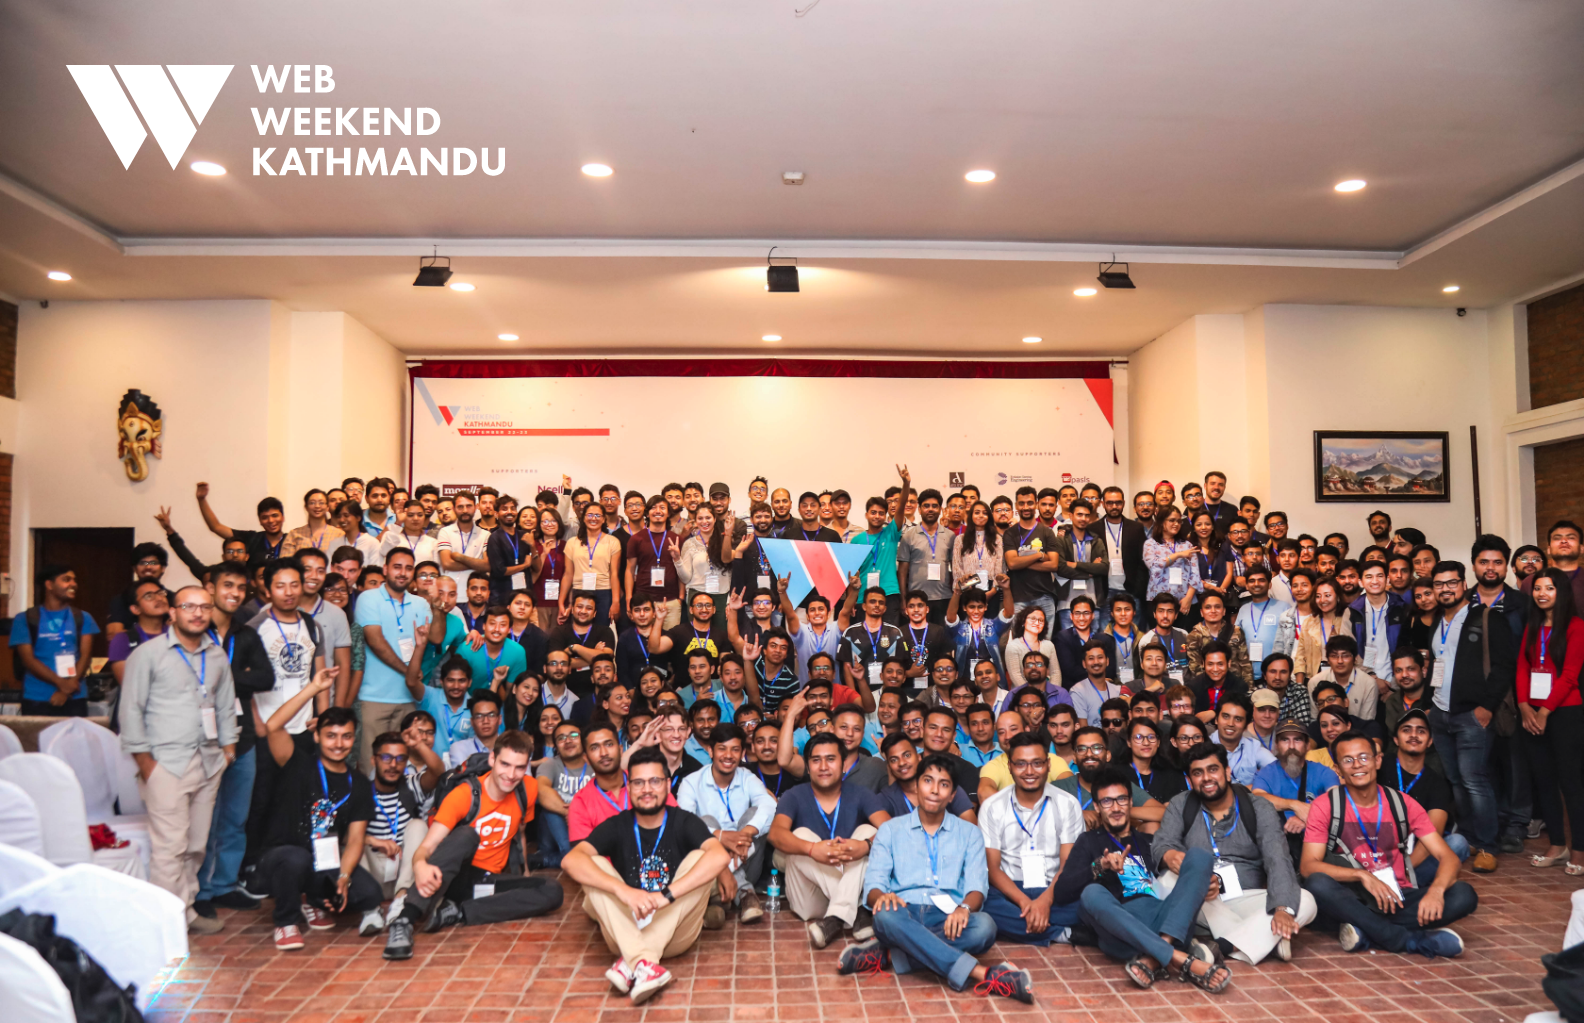 Web Weekend Kathmandu Group Picture